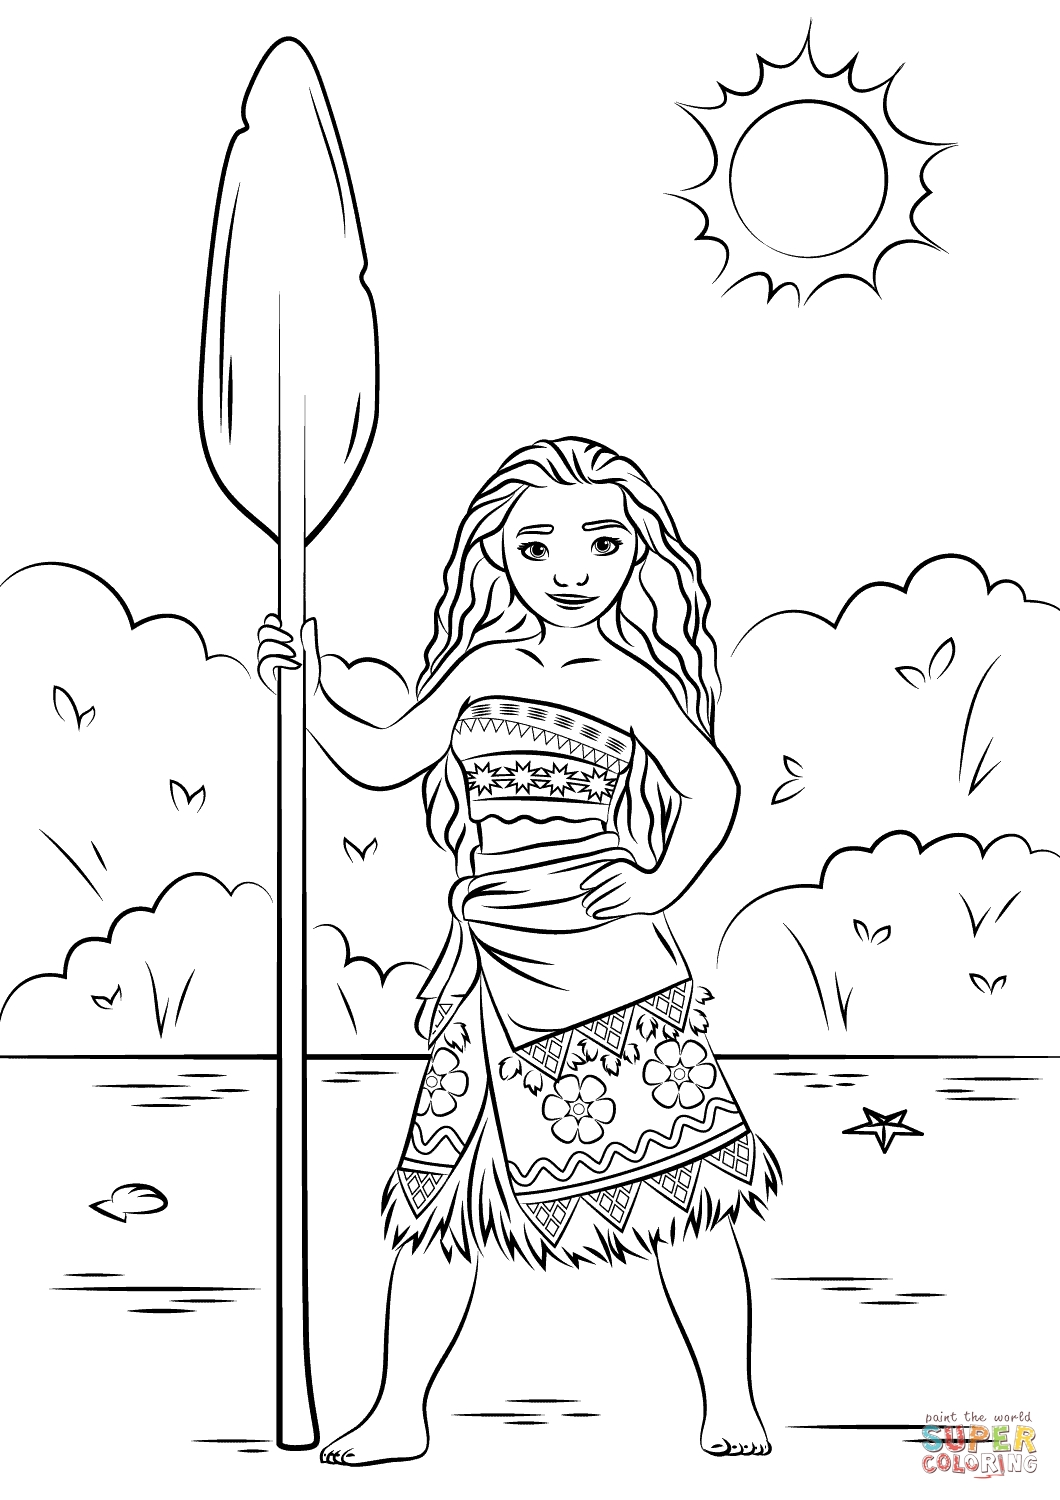 20 Land before Time Coloring Pages Selection | FREE COLORING PAGES